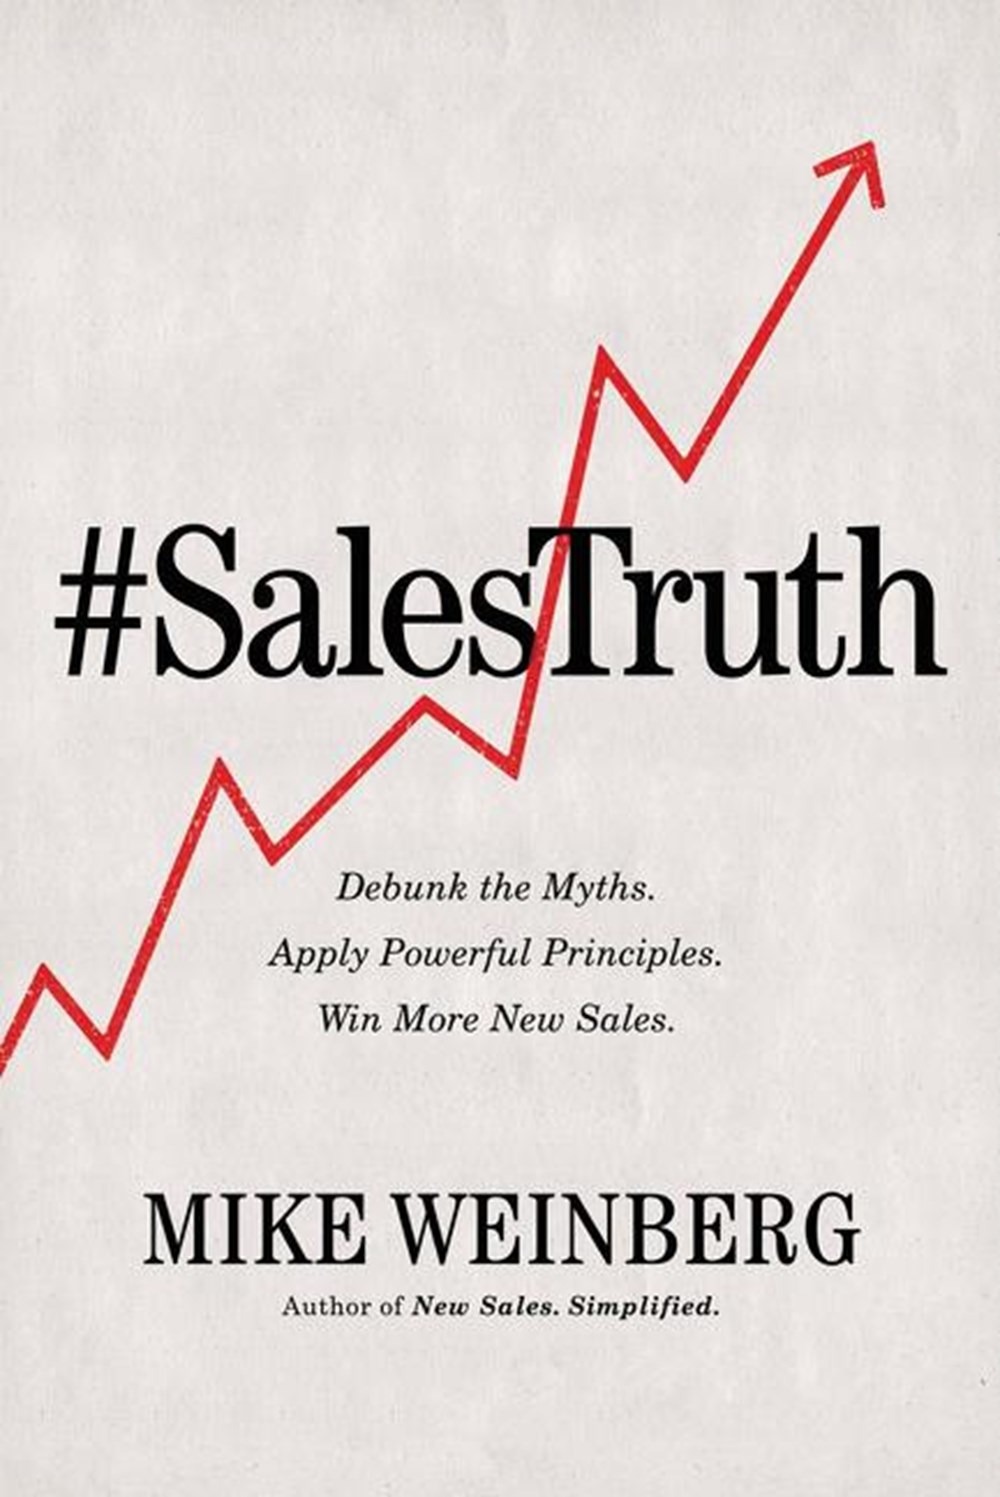 Sales Truth Debunk the Myths. Apply Powerful Principles. Win More New Sales.